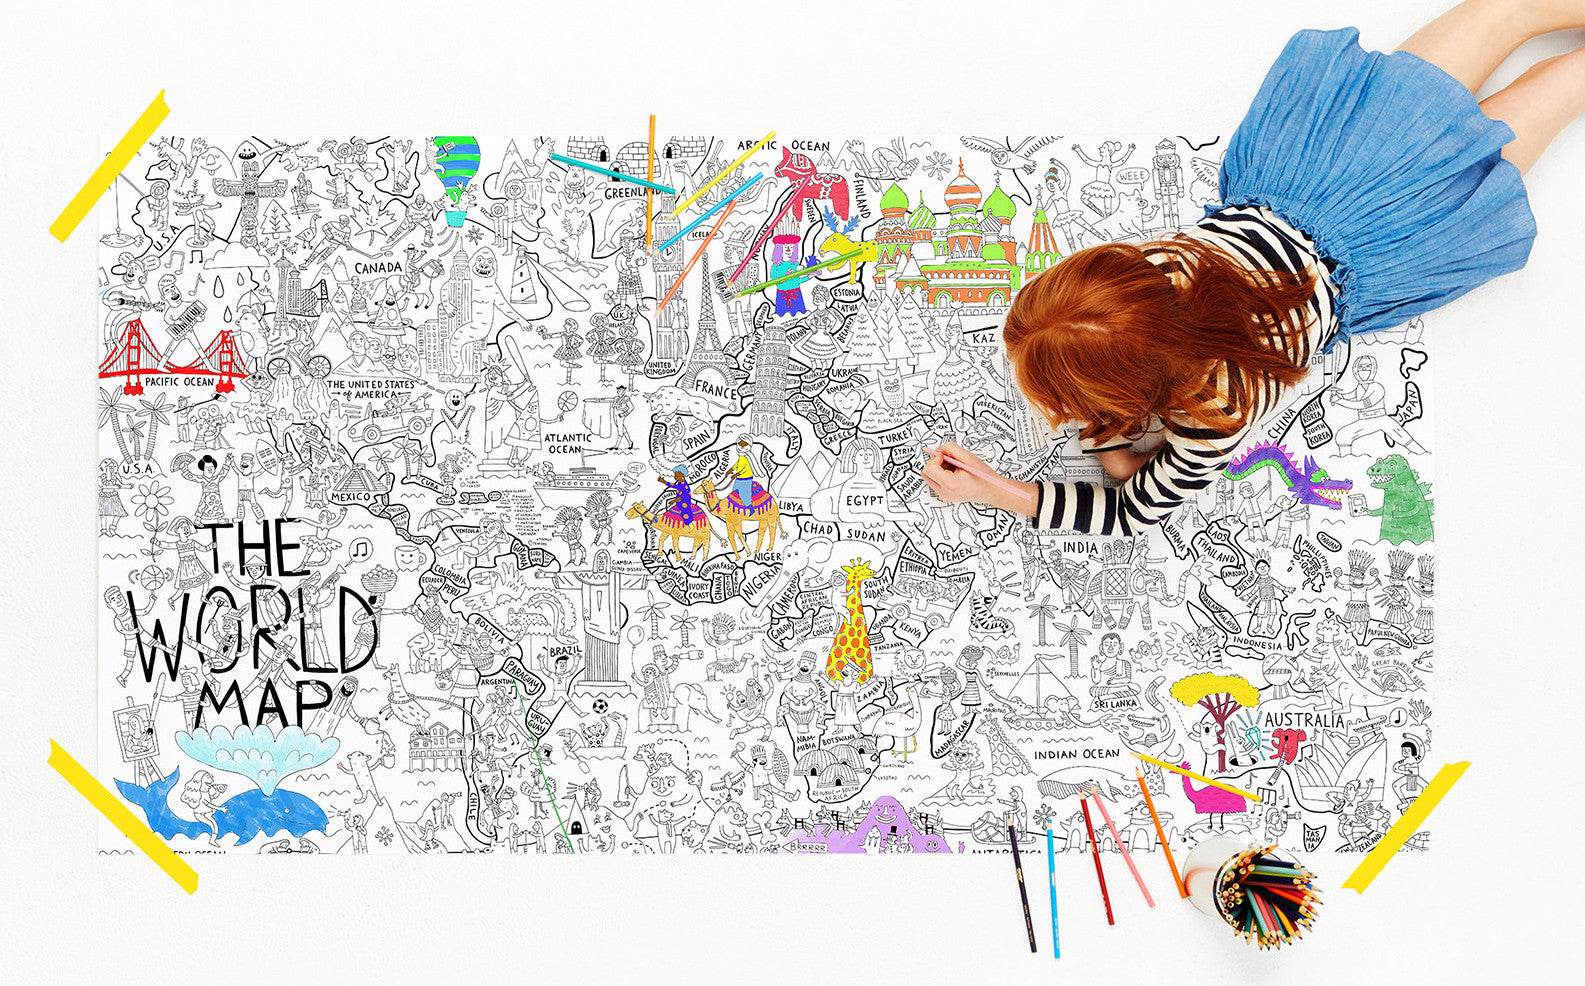 what a colorful world map coloring poster u2013 wander